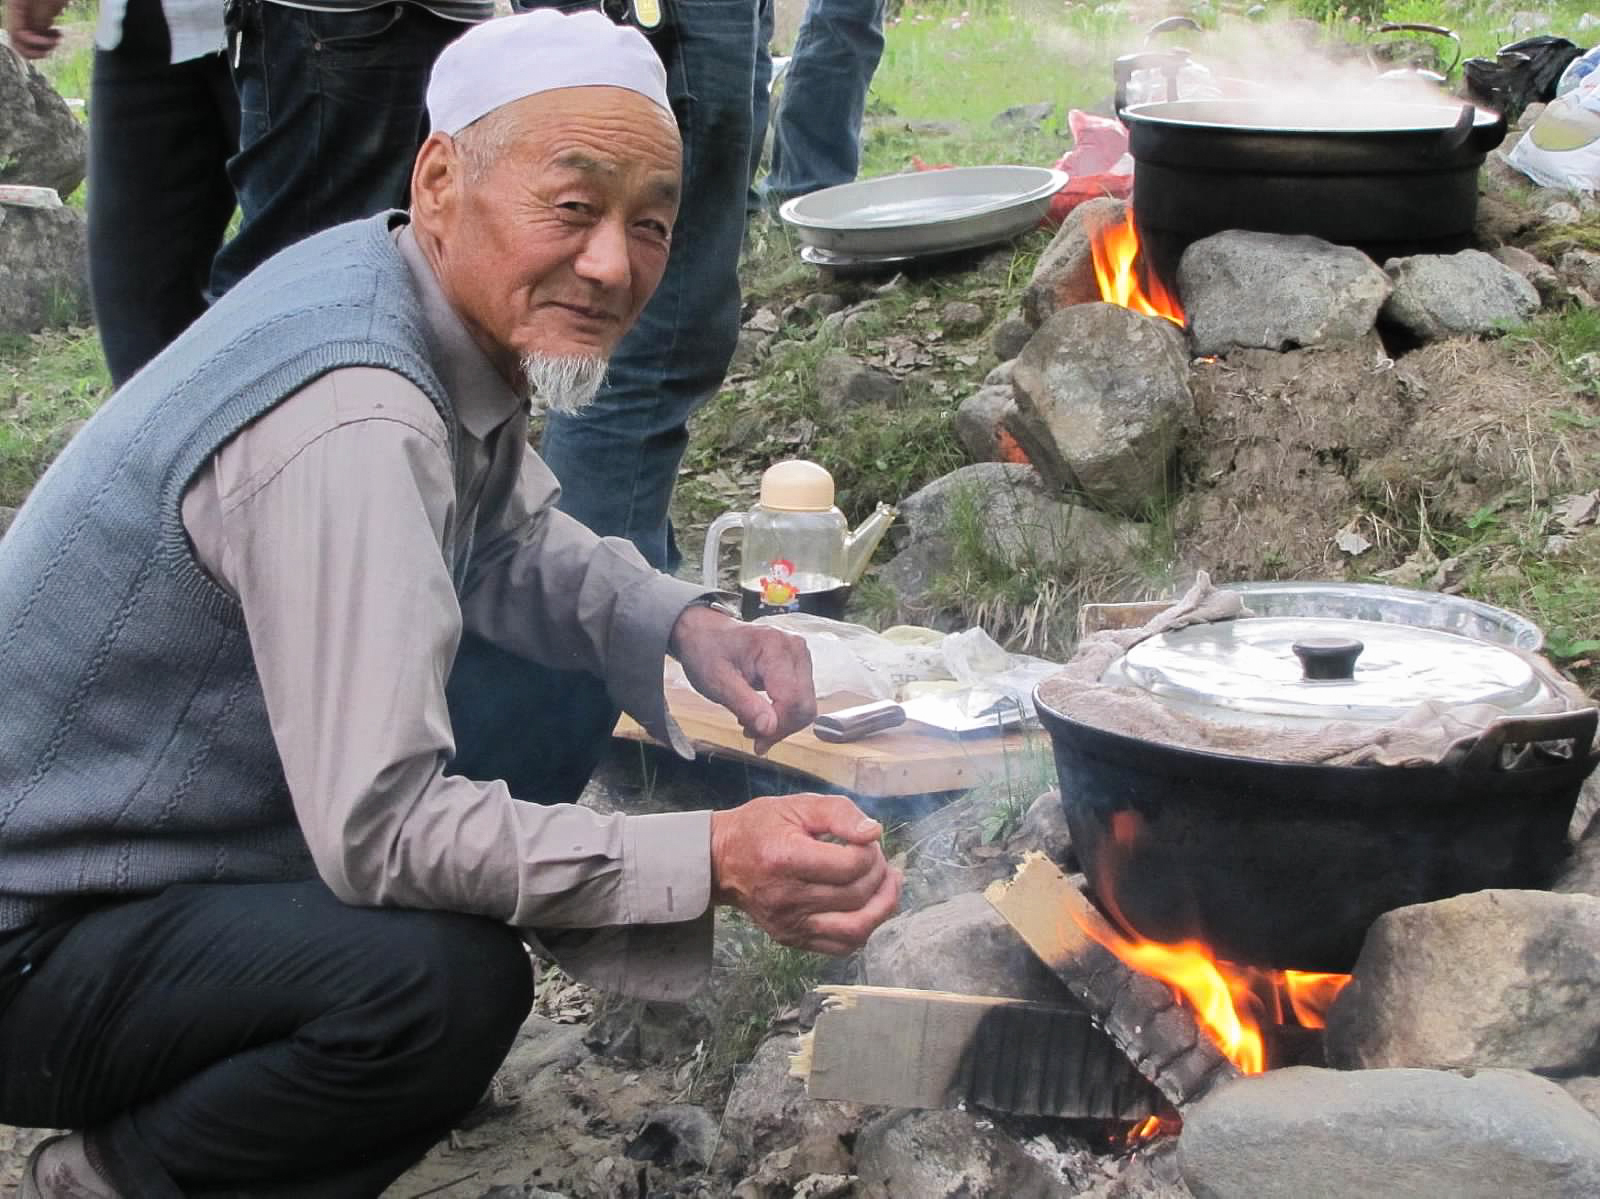 One of the cooks at our picnic